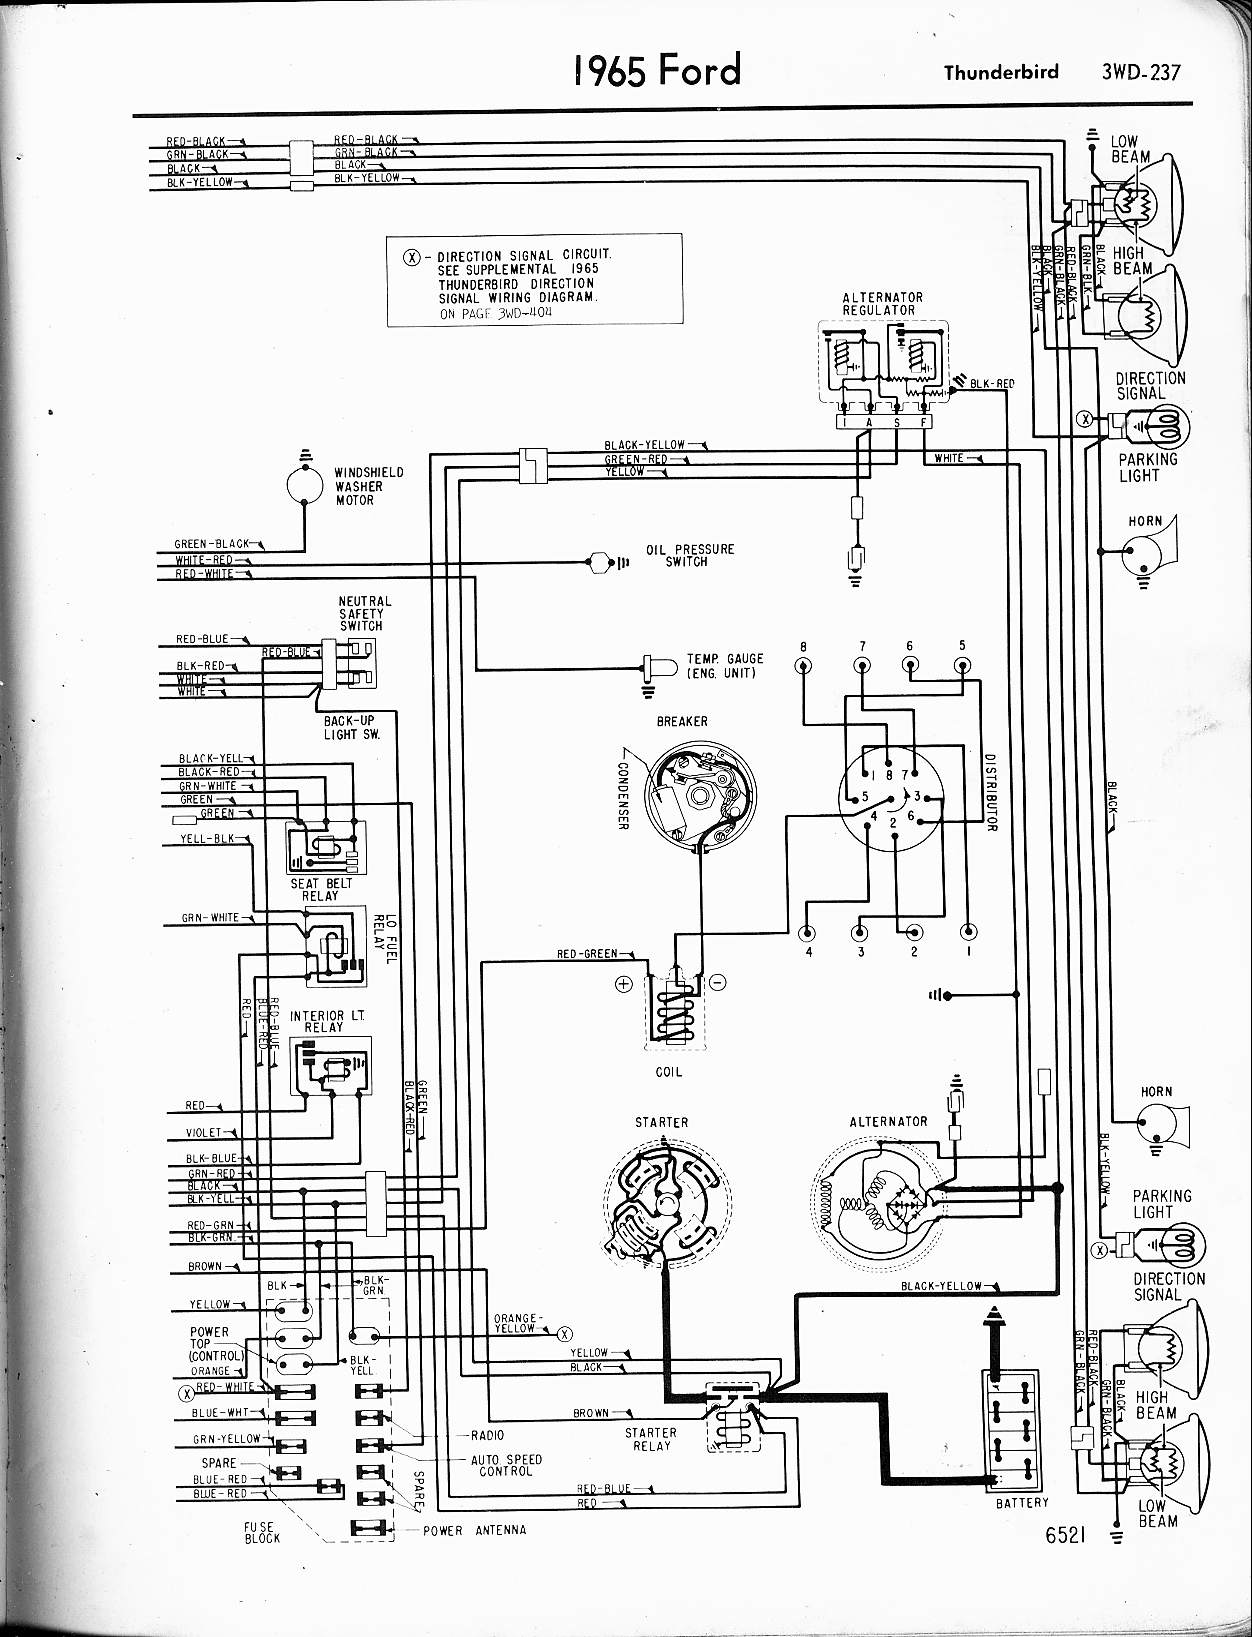 MWire5765 237 57 65 ford wiring diagrams 1965 ford f100 wiring diagram at crackthecode.co